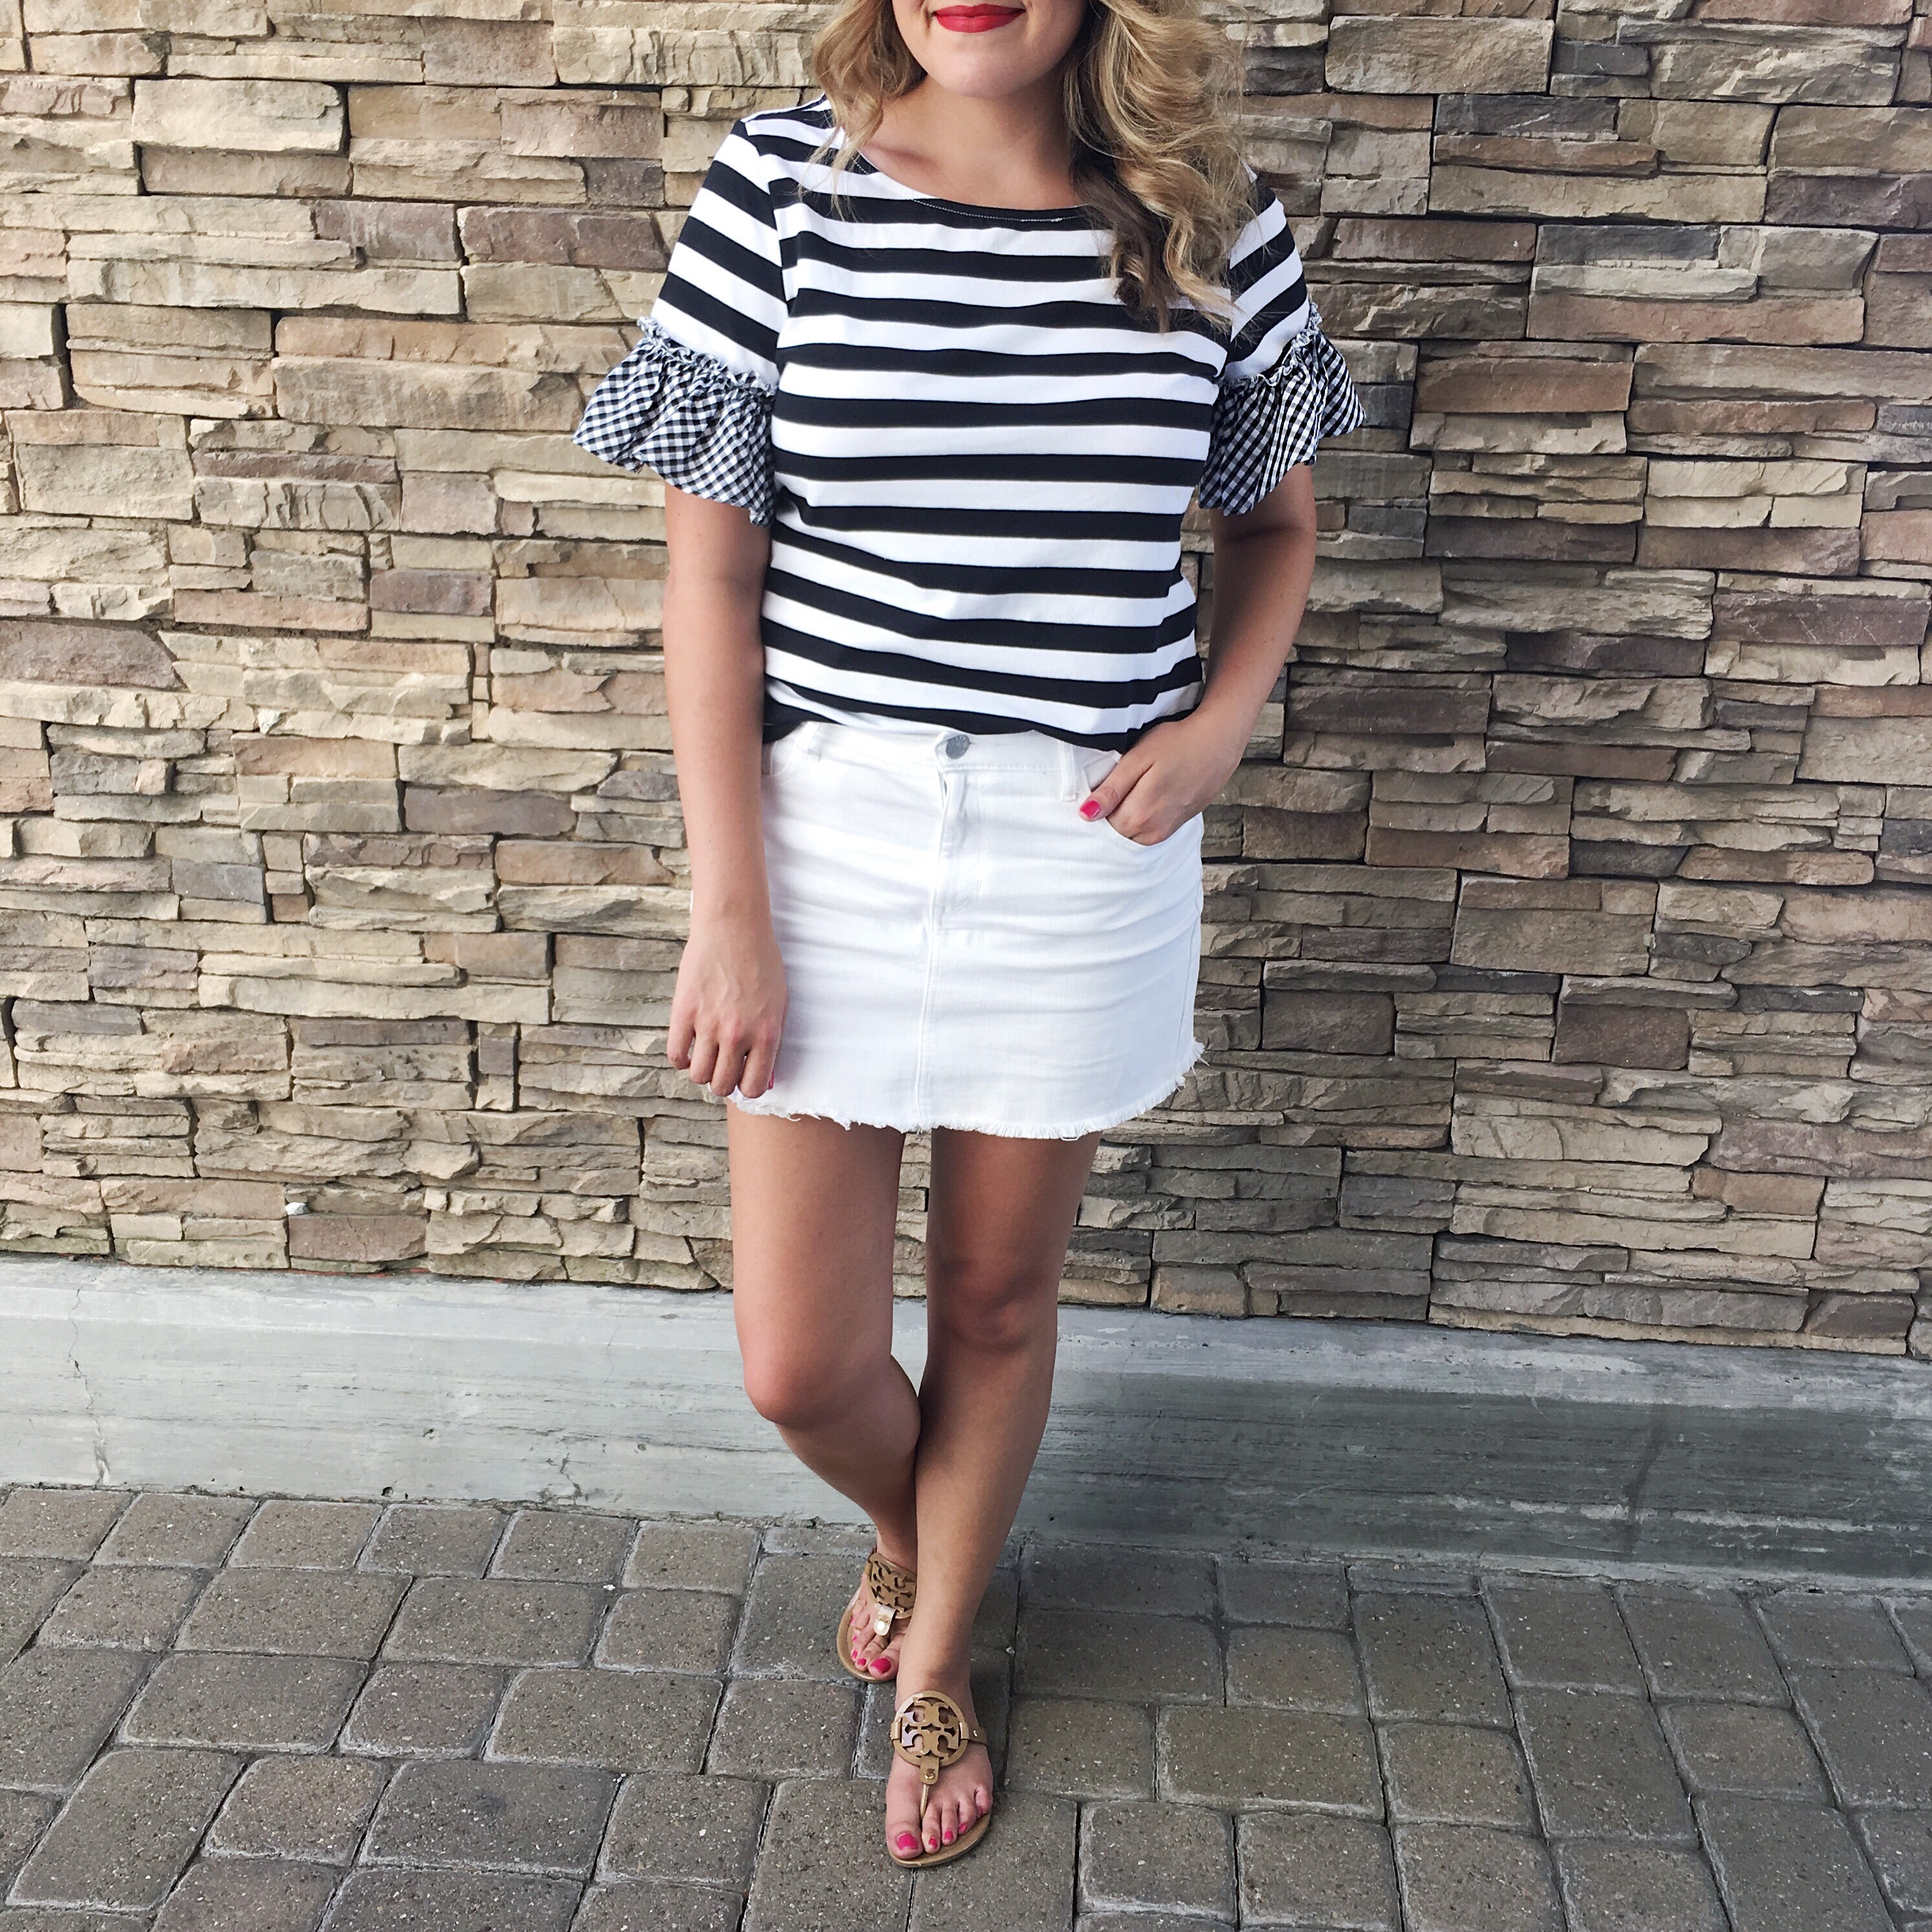 best instagram outfits july - white mini skirt and stripe tee | bylaurenm.com